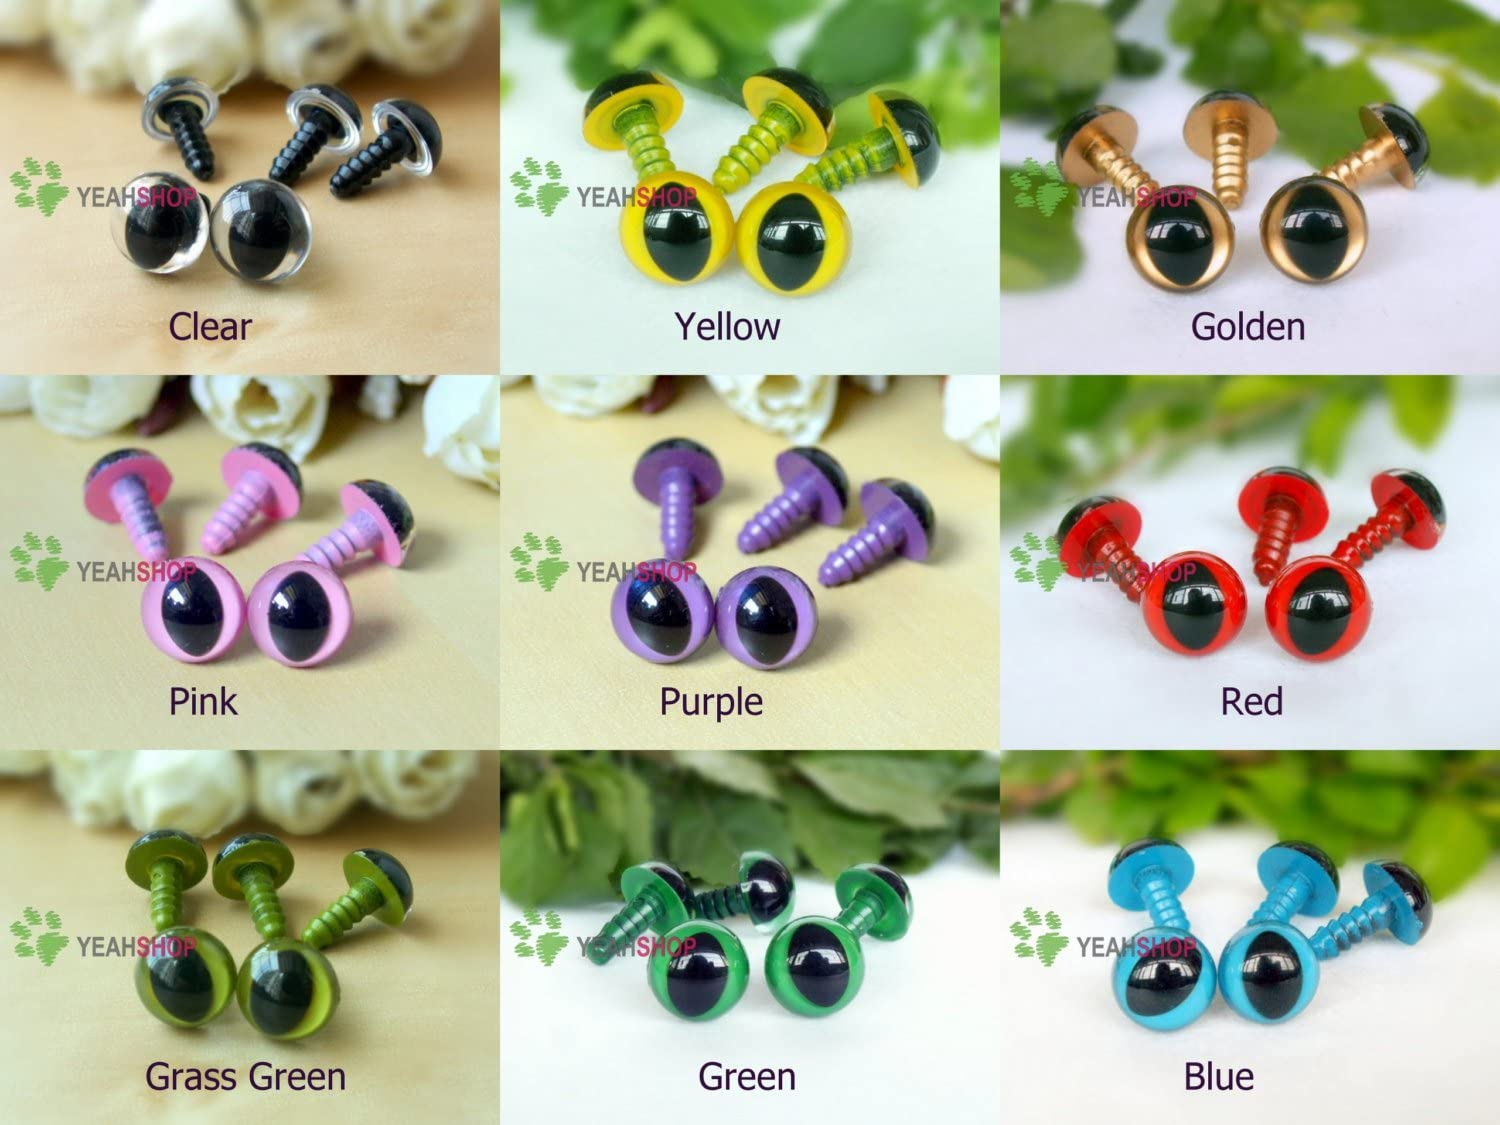 12mm Safety Eyes Plastic Eyes Plastic Craft Safety Eyes for Cat//Stuffed Doll Animal Amigurumi DIY Accessories Grass Green 20 Pairs